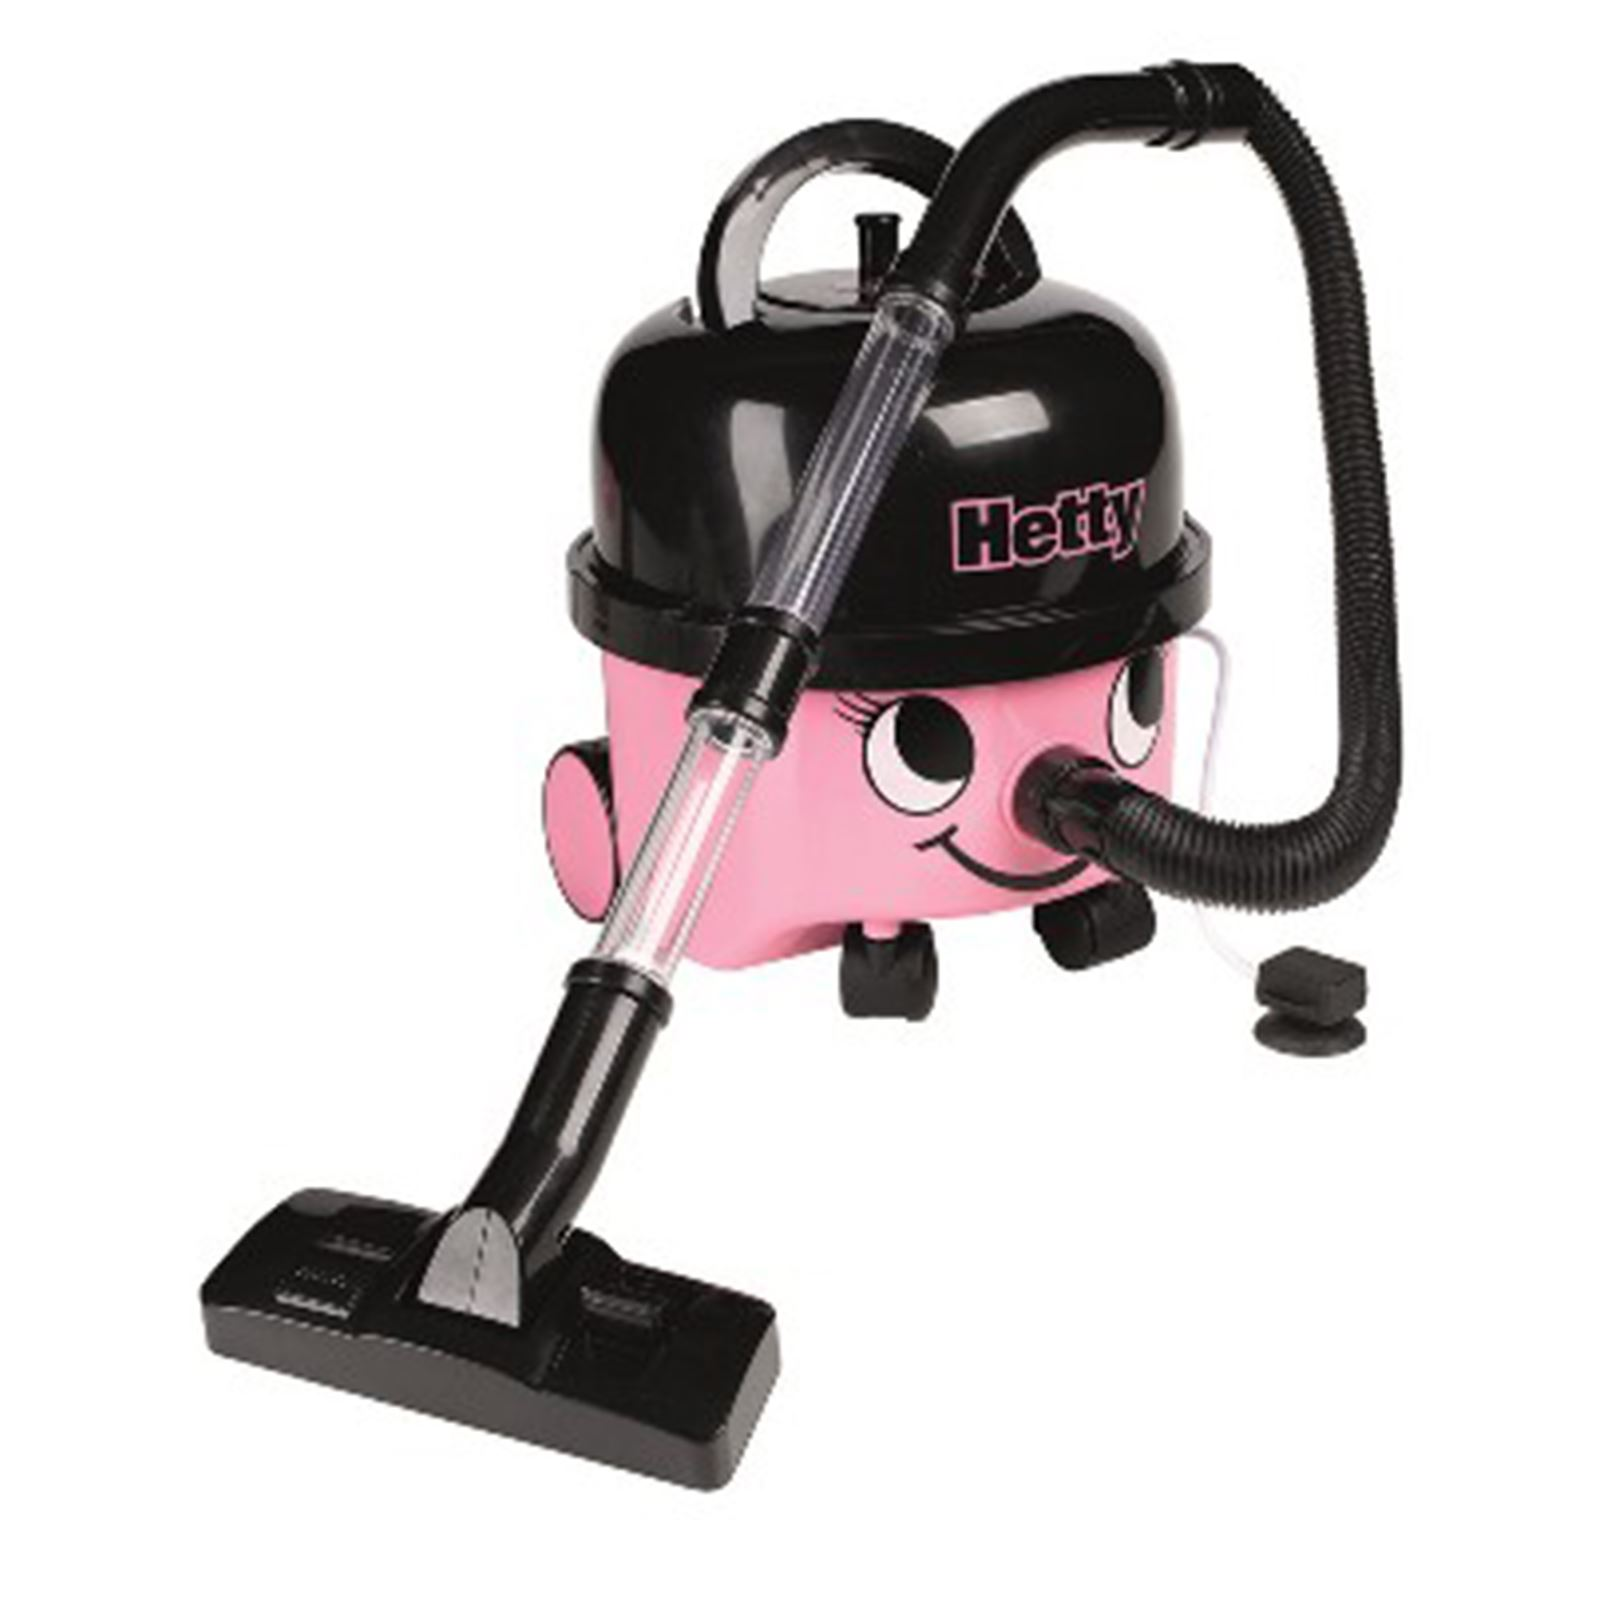 Indexbild 24 - KIDS VACUUM CLEANERS - LITTLE HENRY HETTY DYSON - KIDS CHILDRENS ROLE PLAY